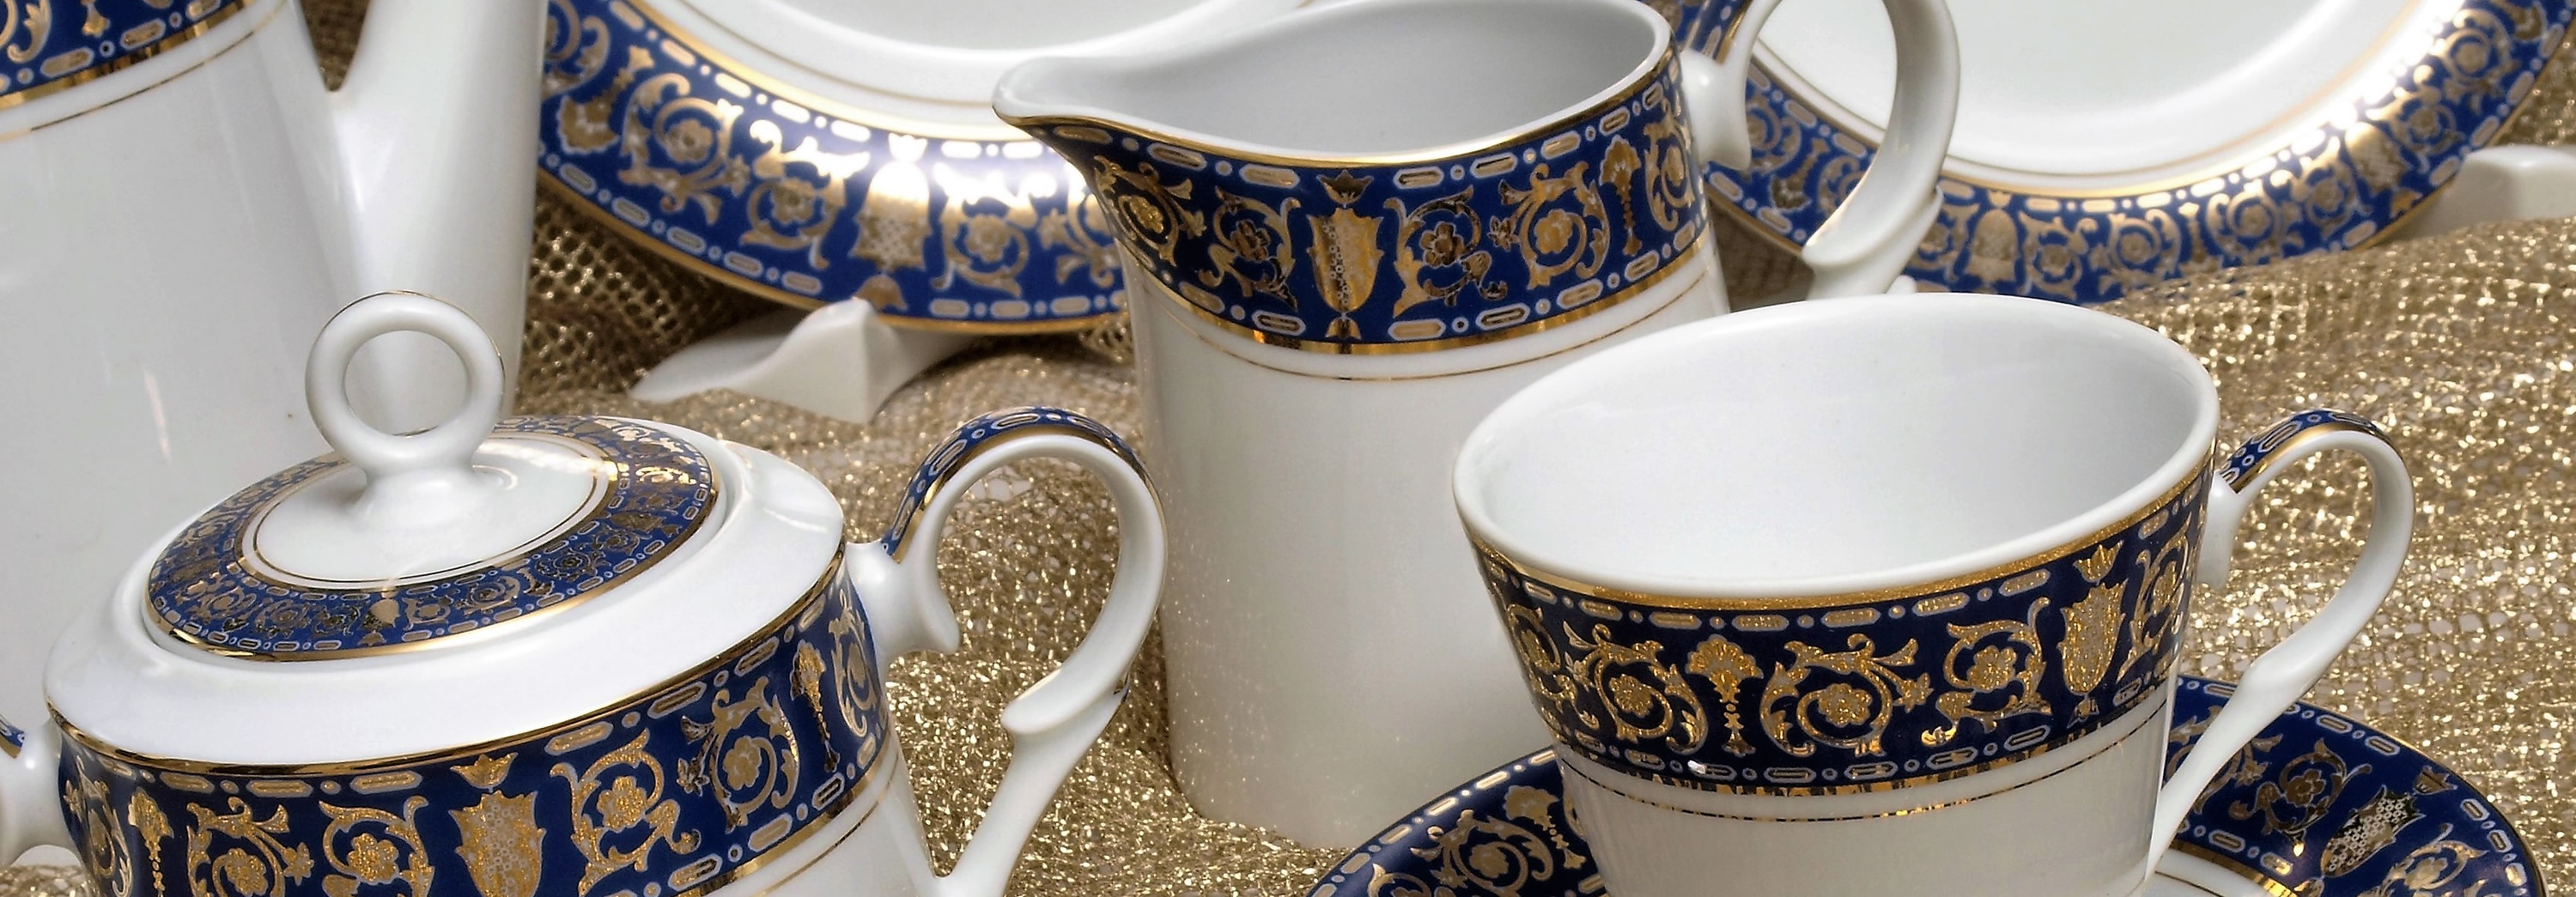 The Royal Blue 68 Piece Dinner Service The Design Dinner Set Collection